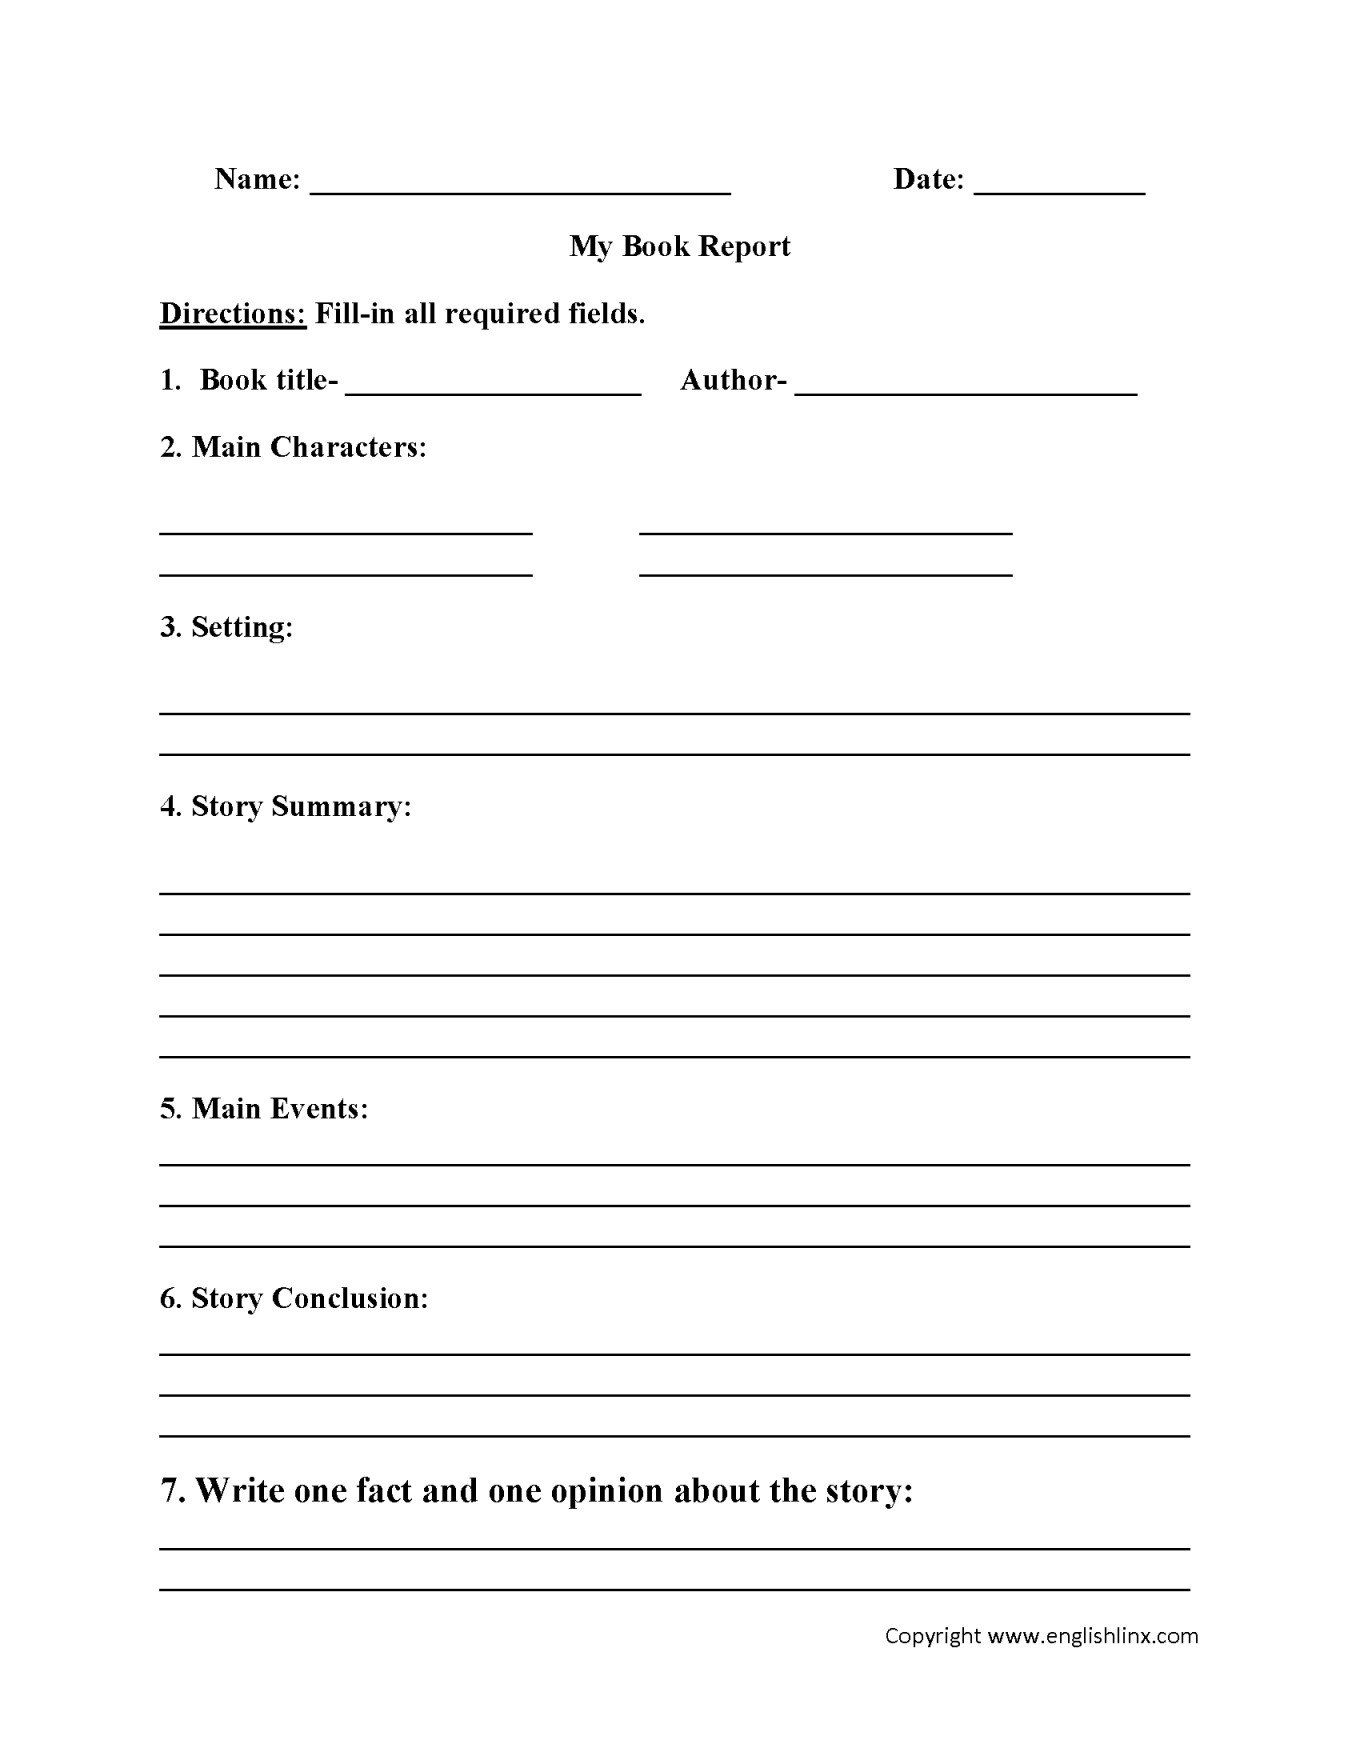 Book Report 5th Grade Historical Fiction Worksheets In 2020 Book Report Templates Book Report Biography Book Report Template